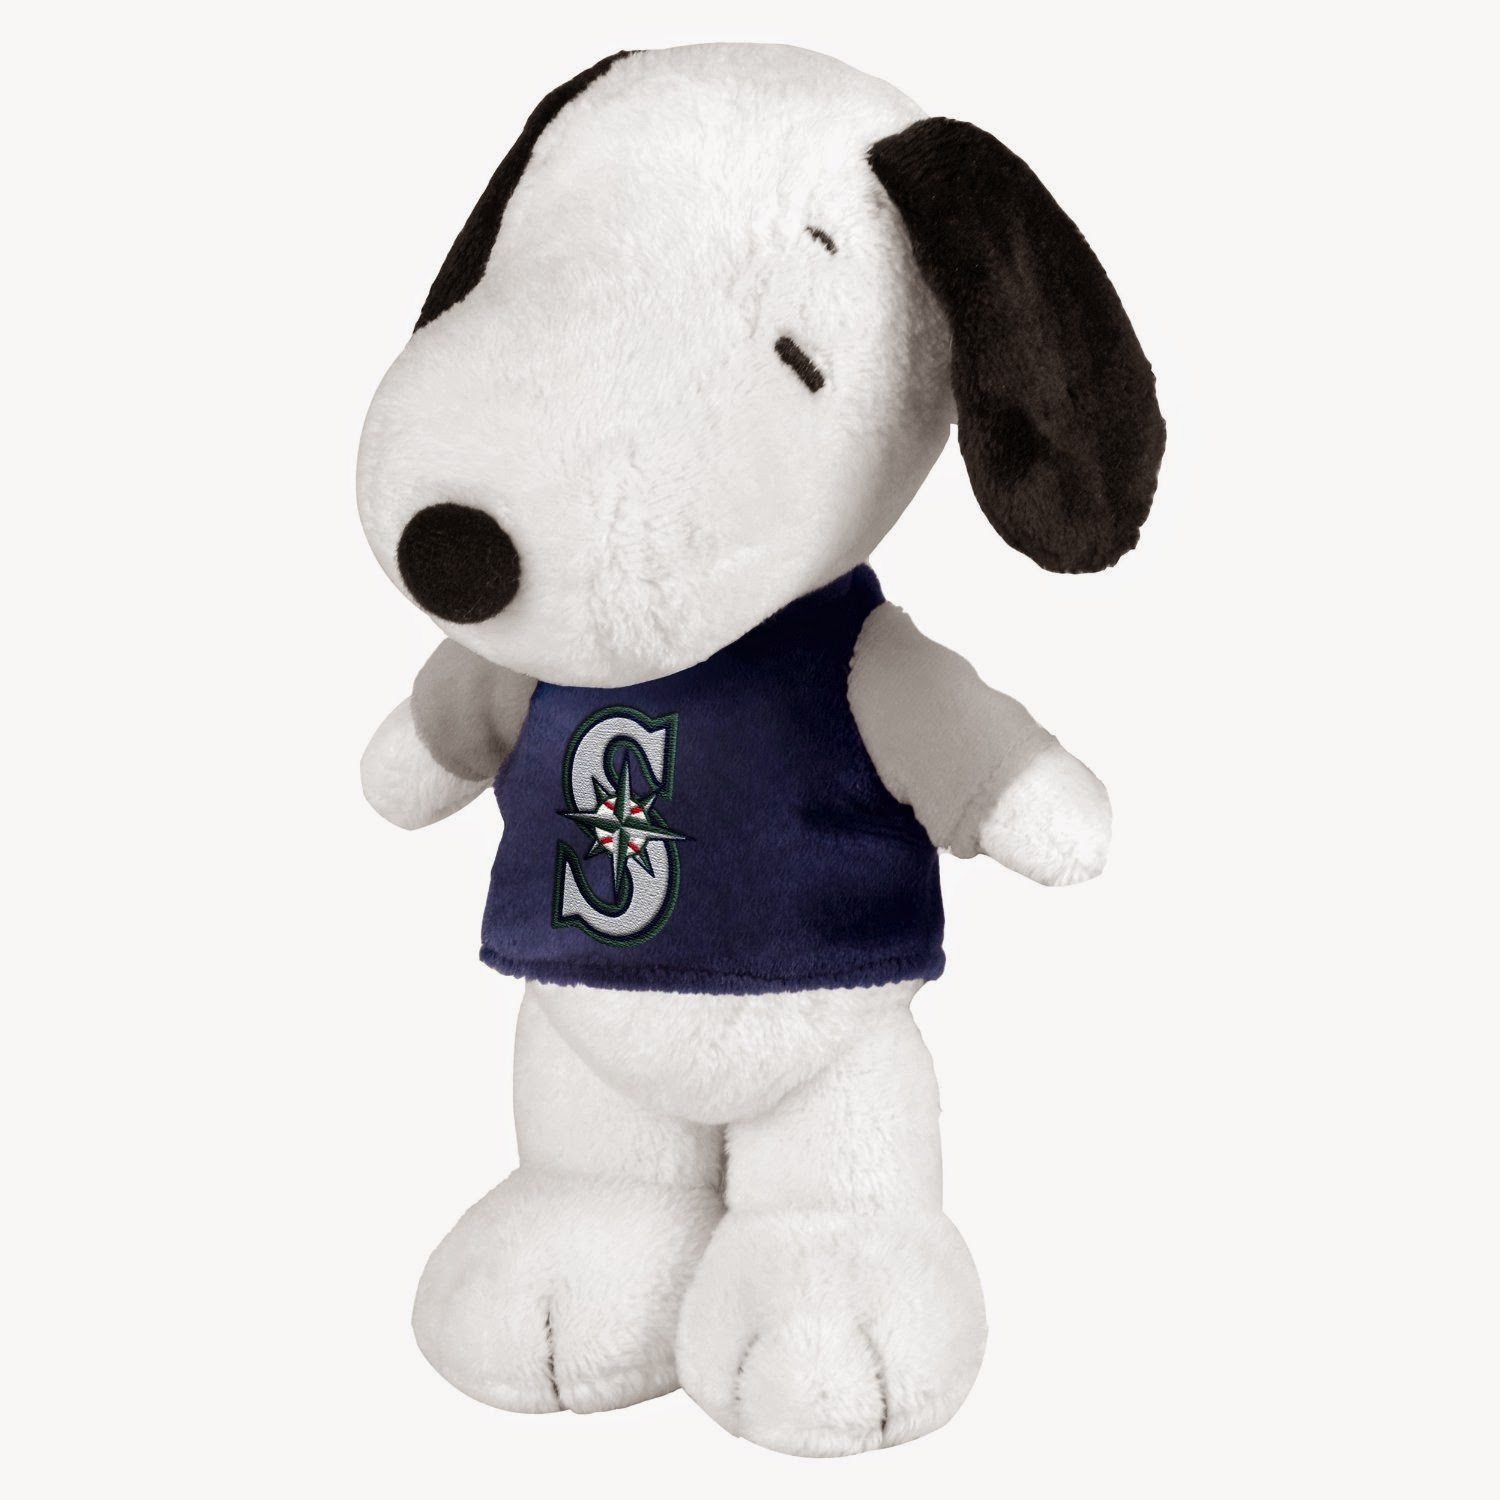 Plush Snoopy in Seattle Mariners shirt